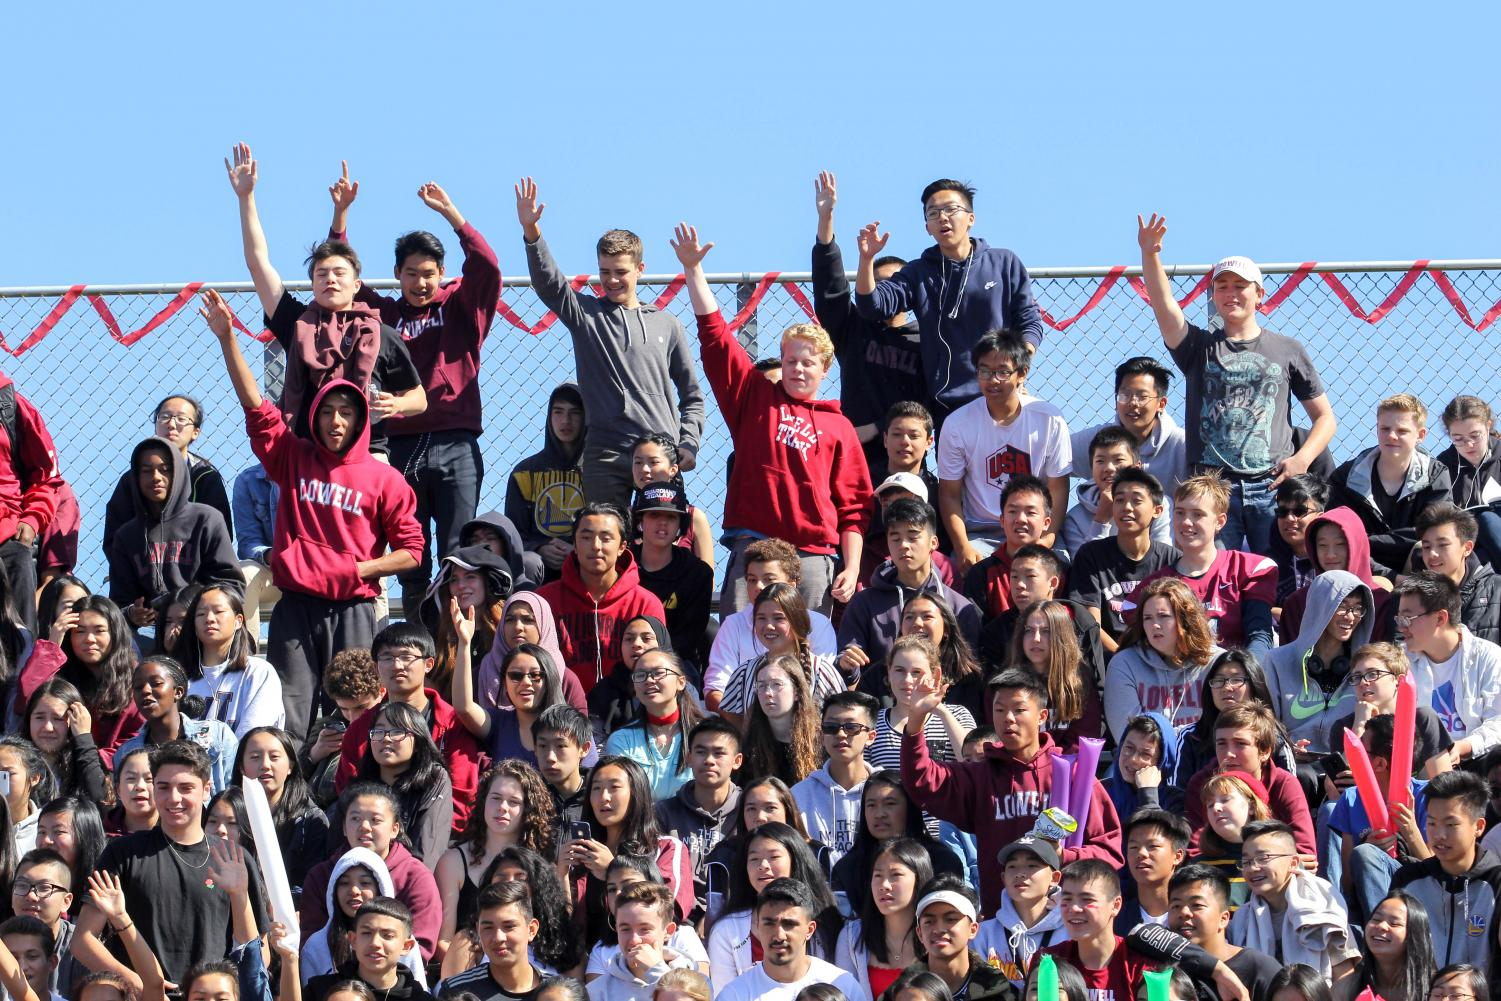 Sophomores+in+the+class+of+2021+wave+their+hands+in+hopes+of+getting+a+free+t-shirt.